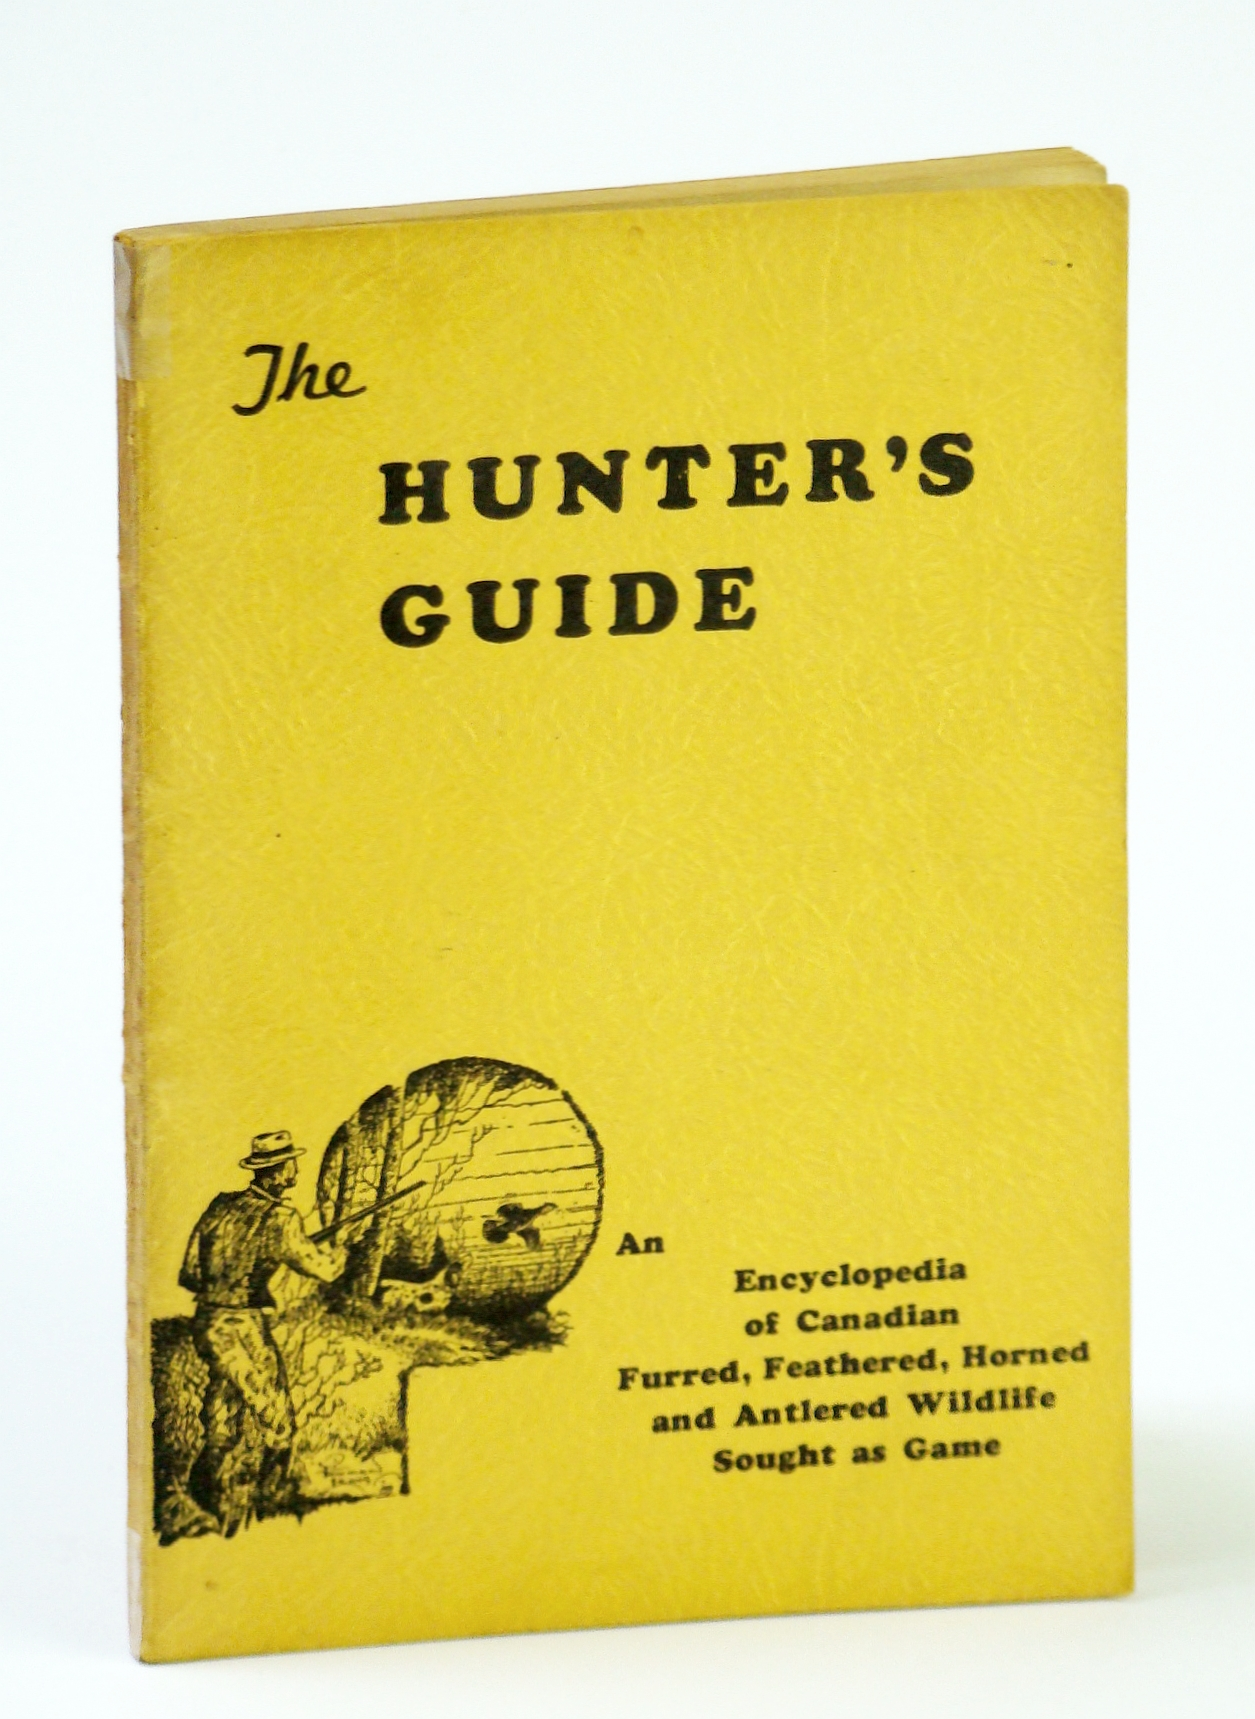 Image for The Hunter's Guide: An Encyclopedia of Canadian Furred, Feathered, Horned and Antlered Wildlife Sought as Game